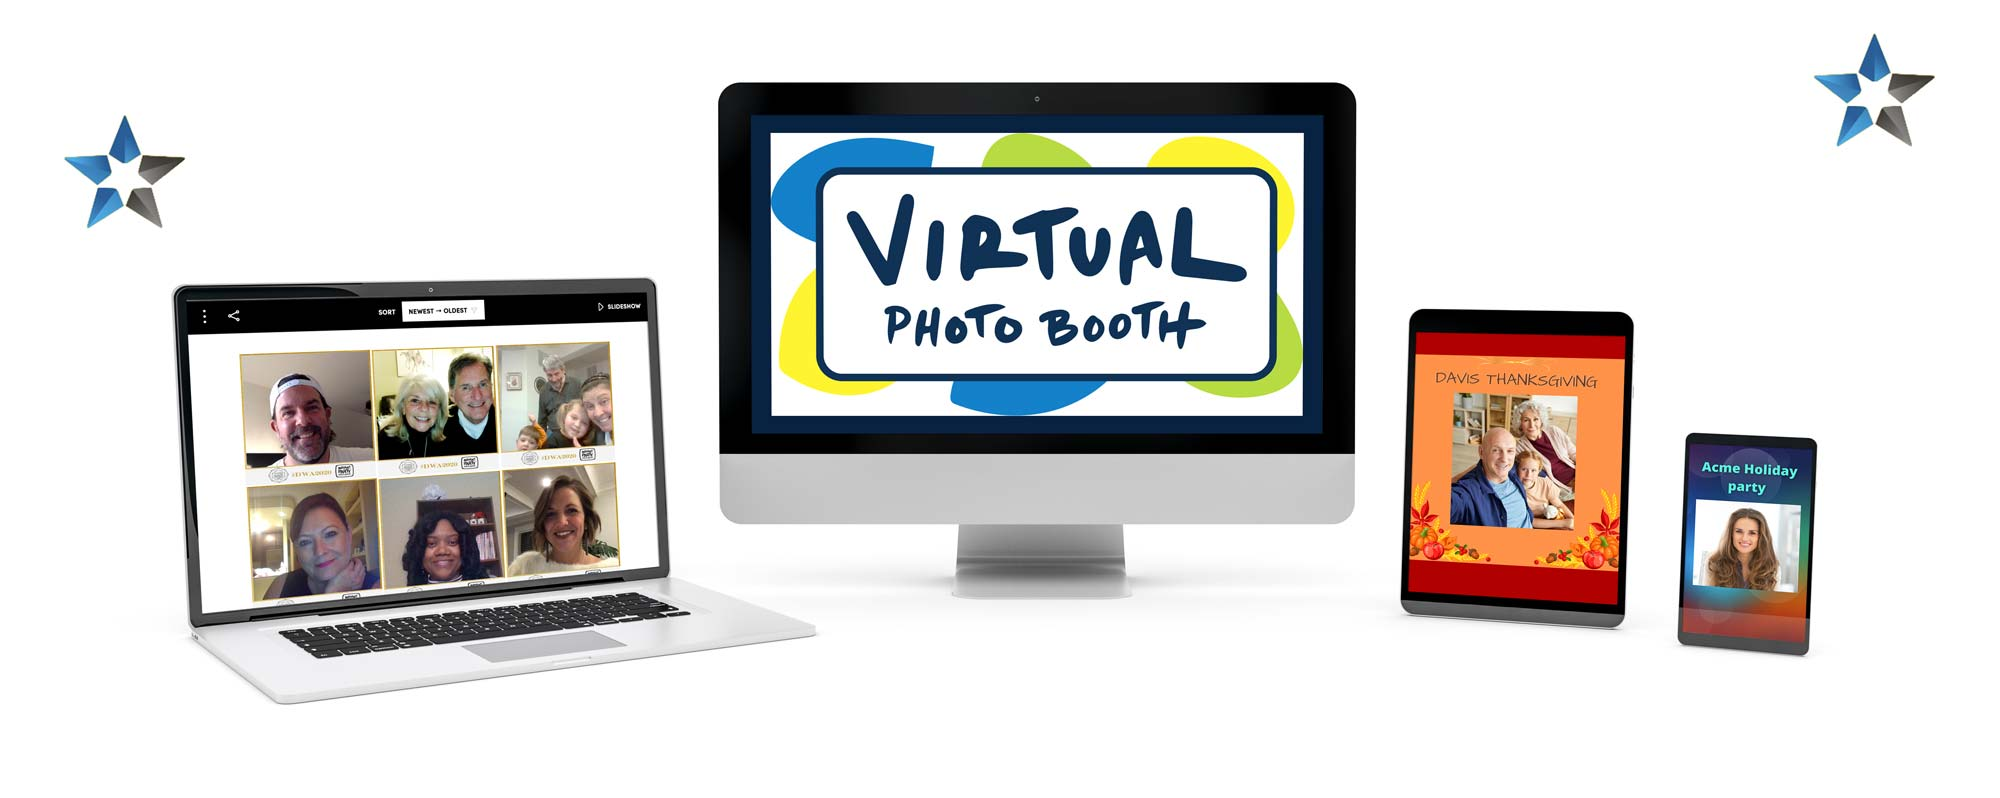 Four computer devices showing the Virtual Photobooth application and how easy it to use on those platforms.